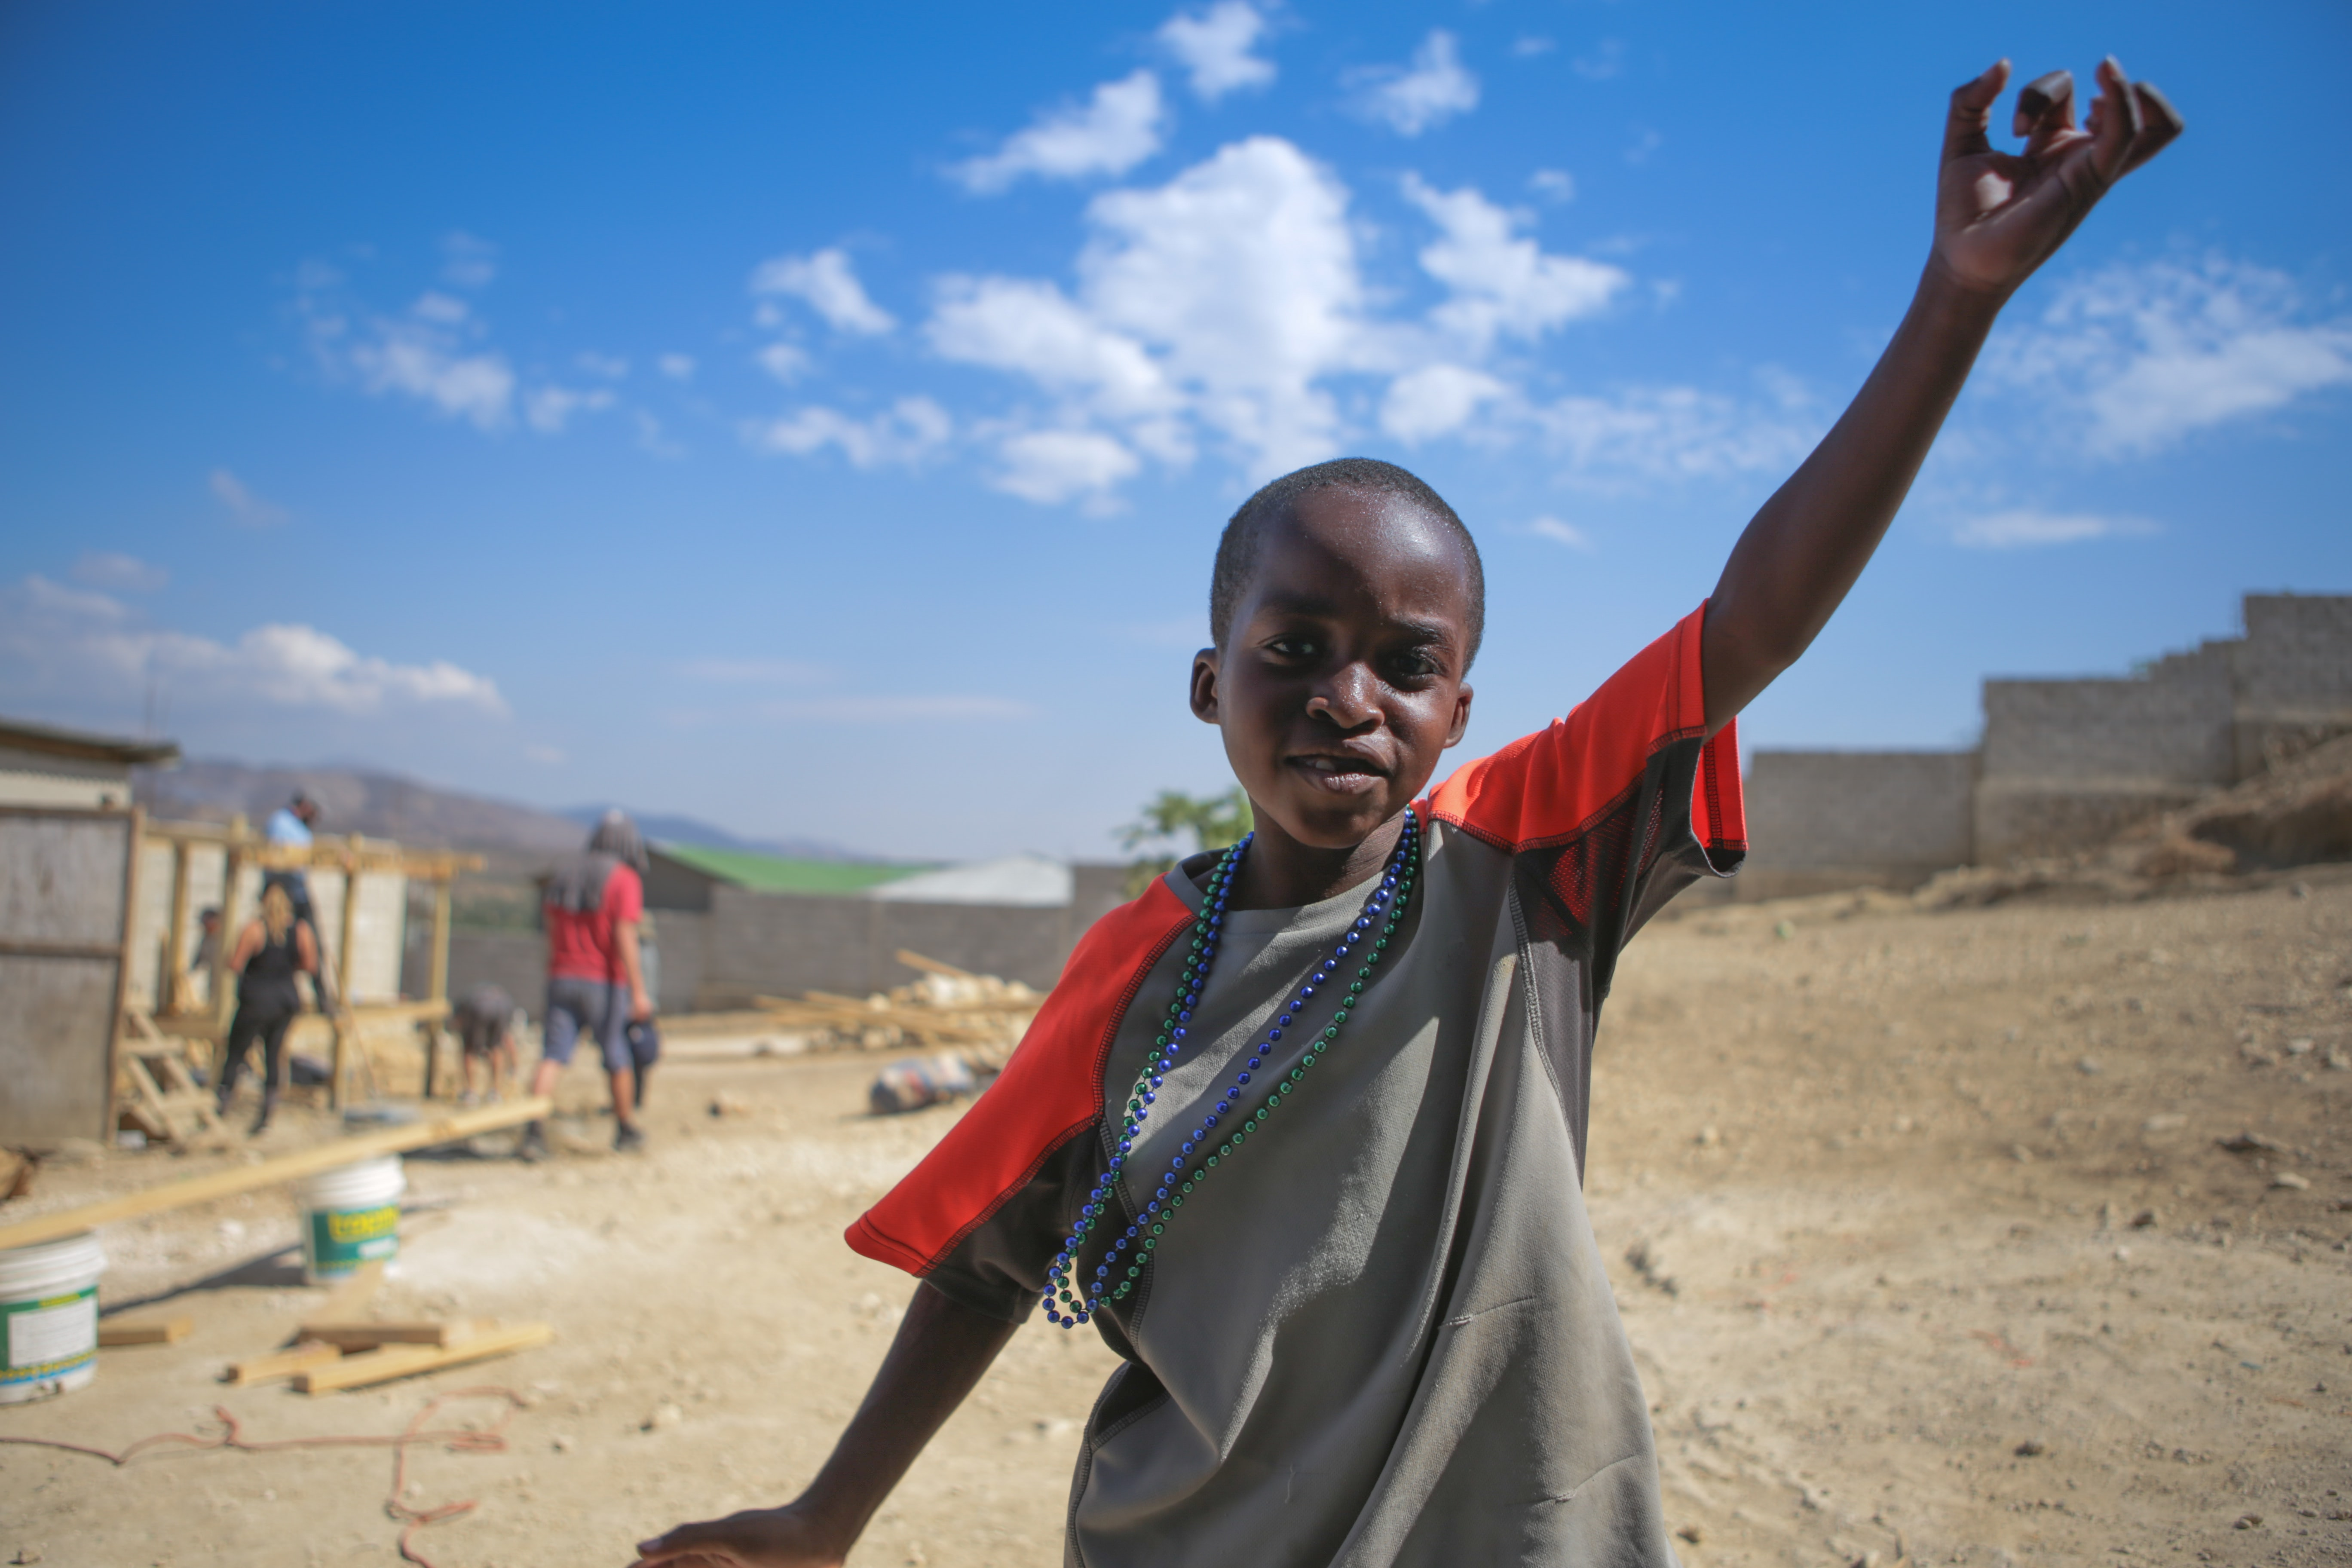 Breaking cycles of disaster and poverty in Haiti